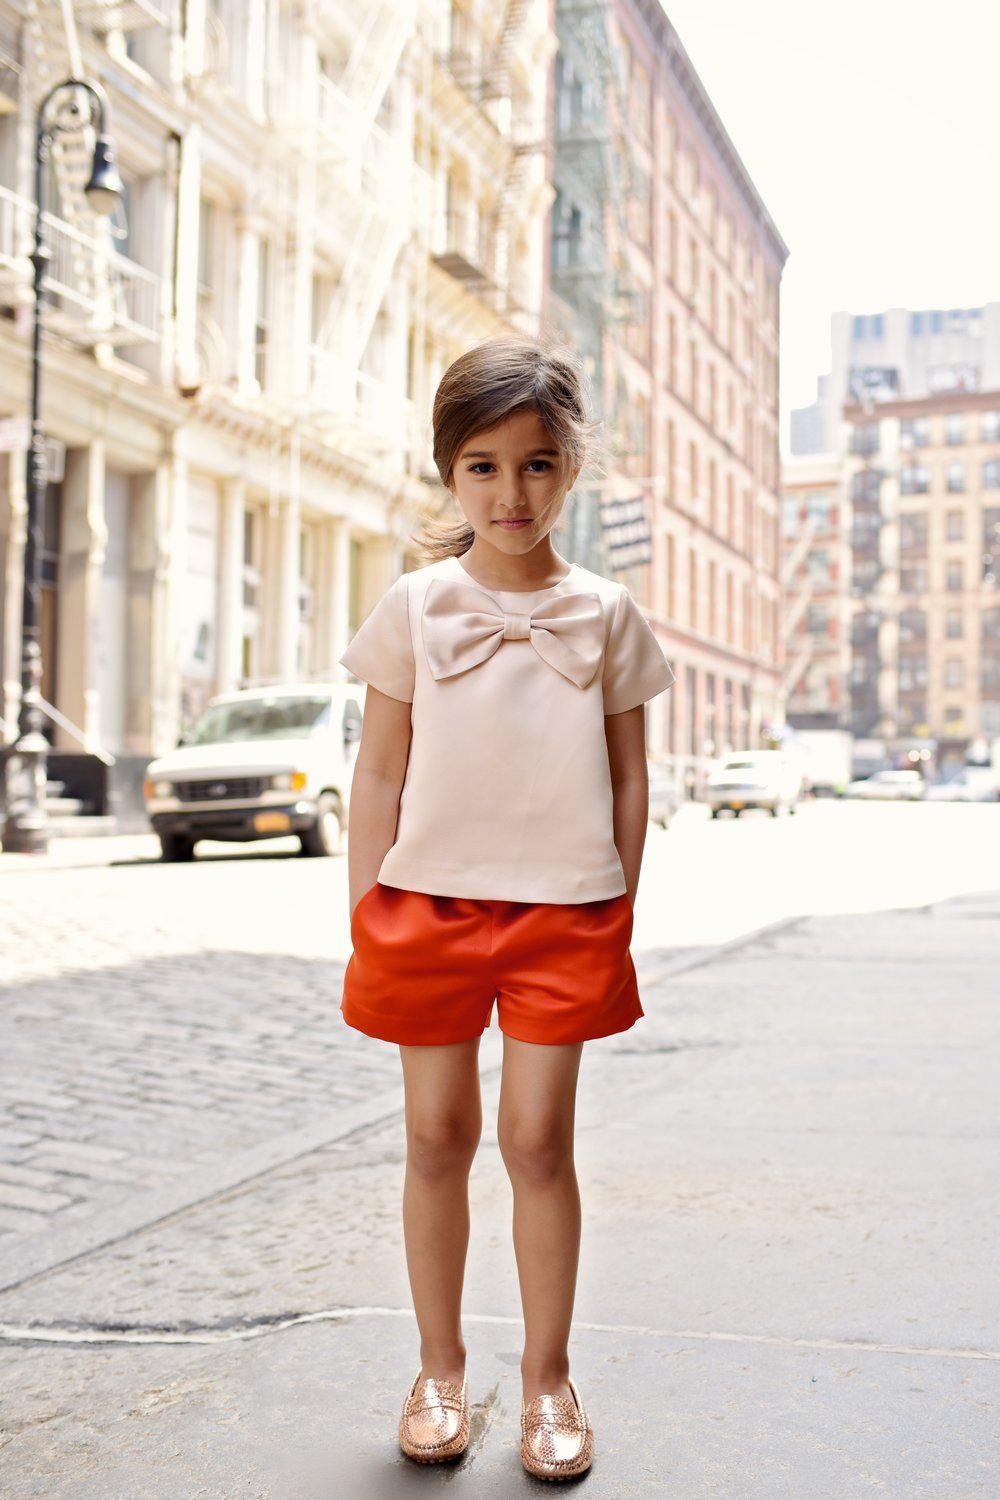 Enfant+Street+Style+by+Gina+Kim+Photography+Hucklebones-5.jpeg